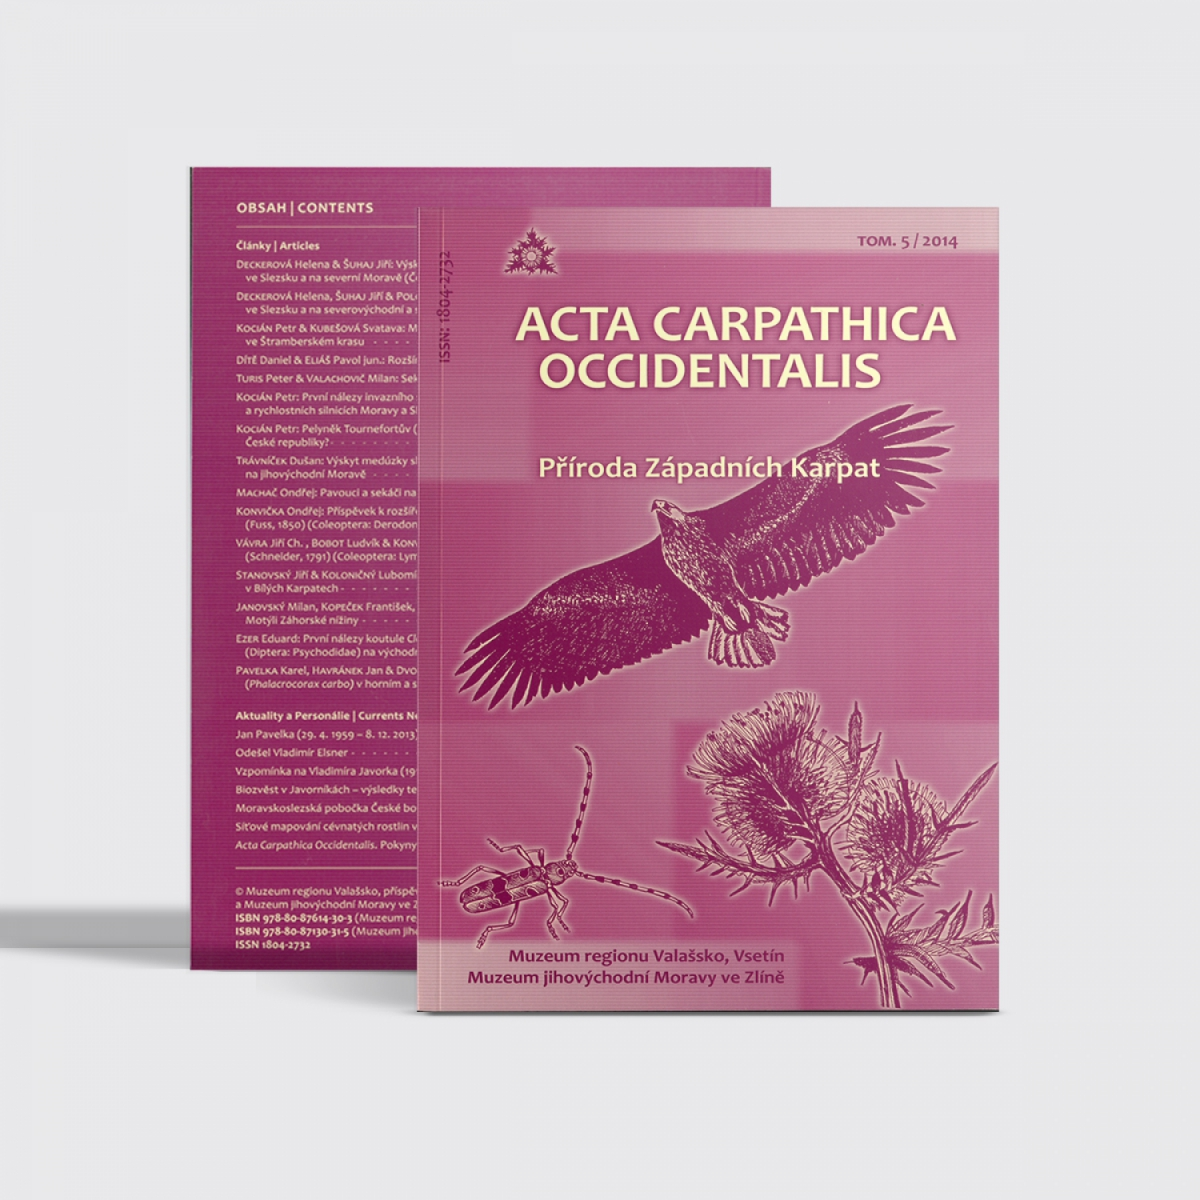 Acta Carpathica Occidentalis 5/2014